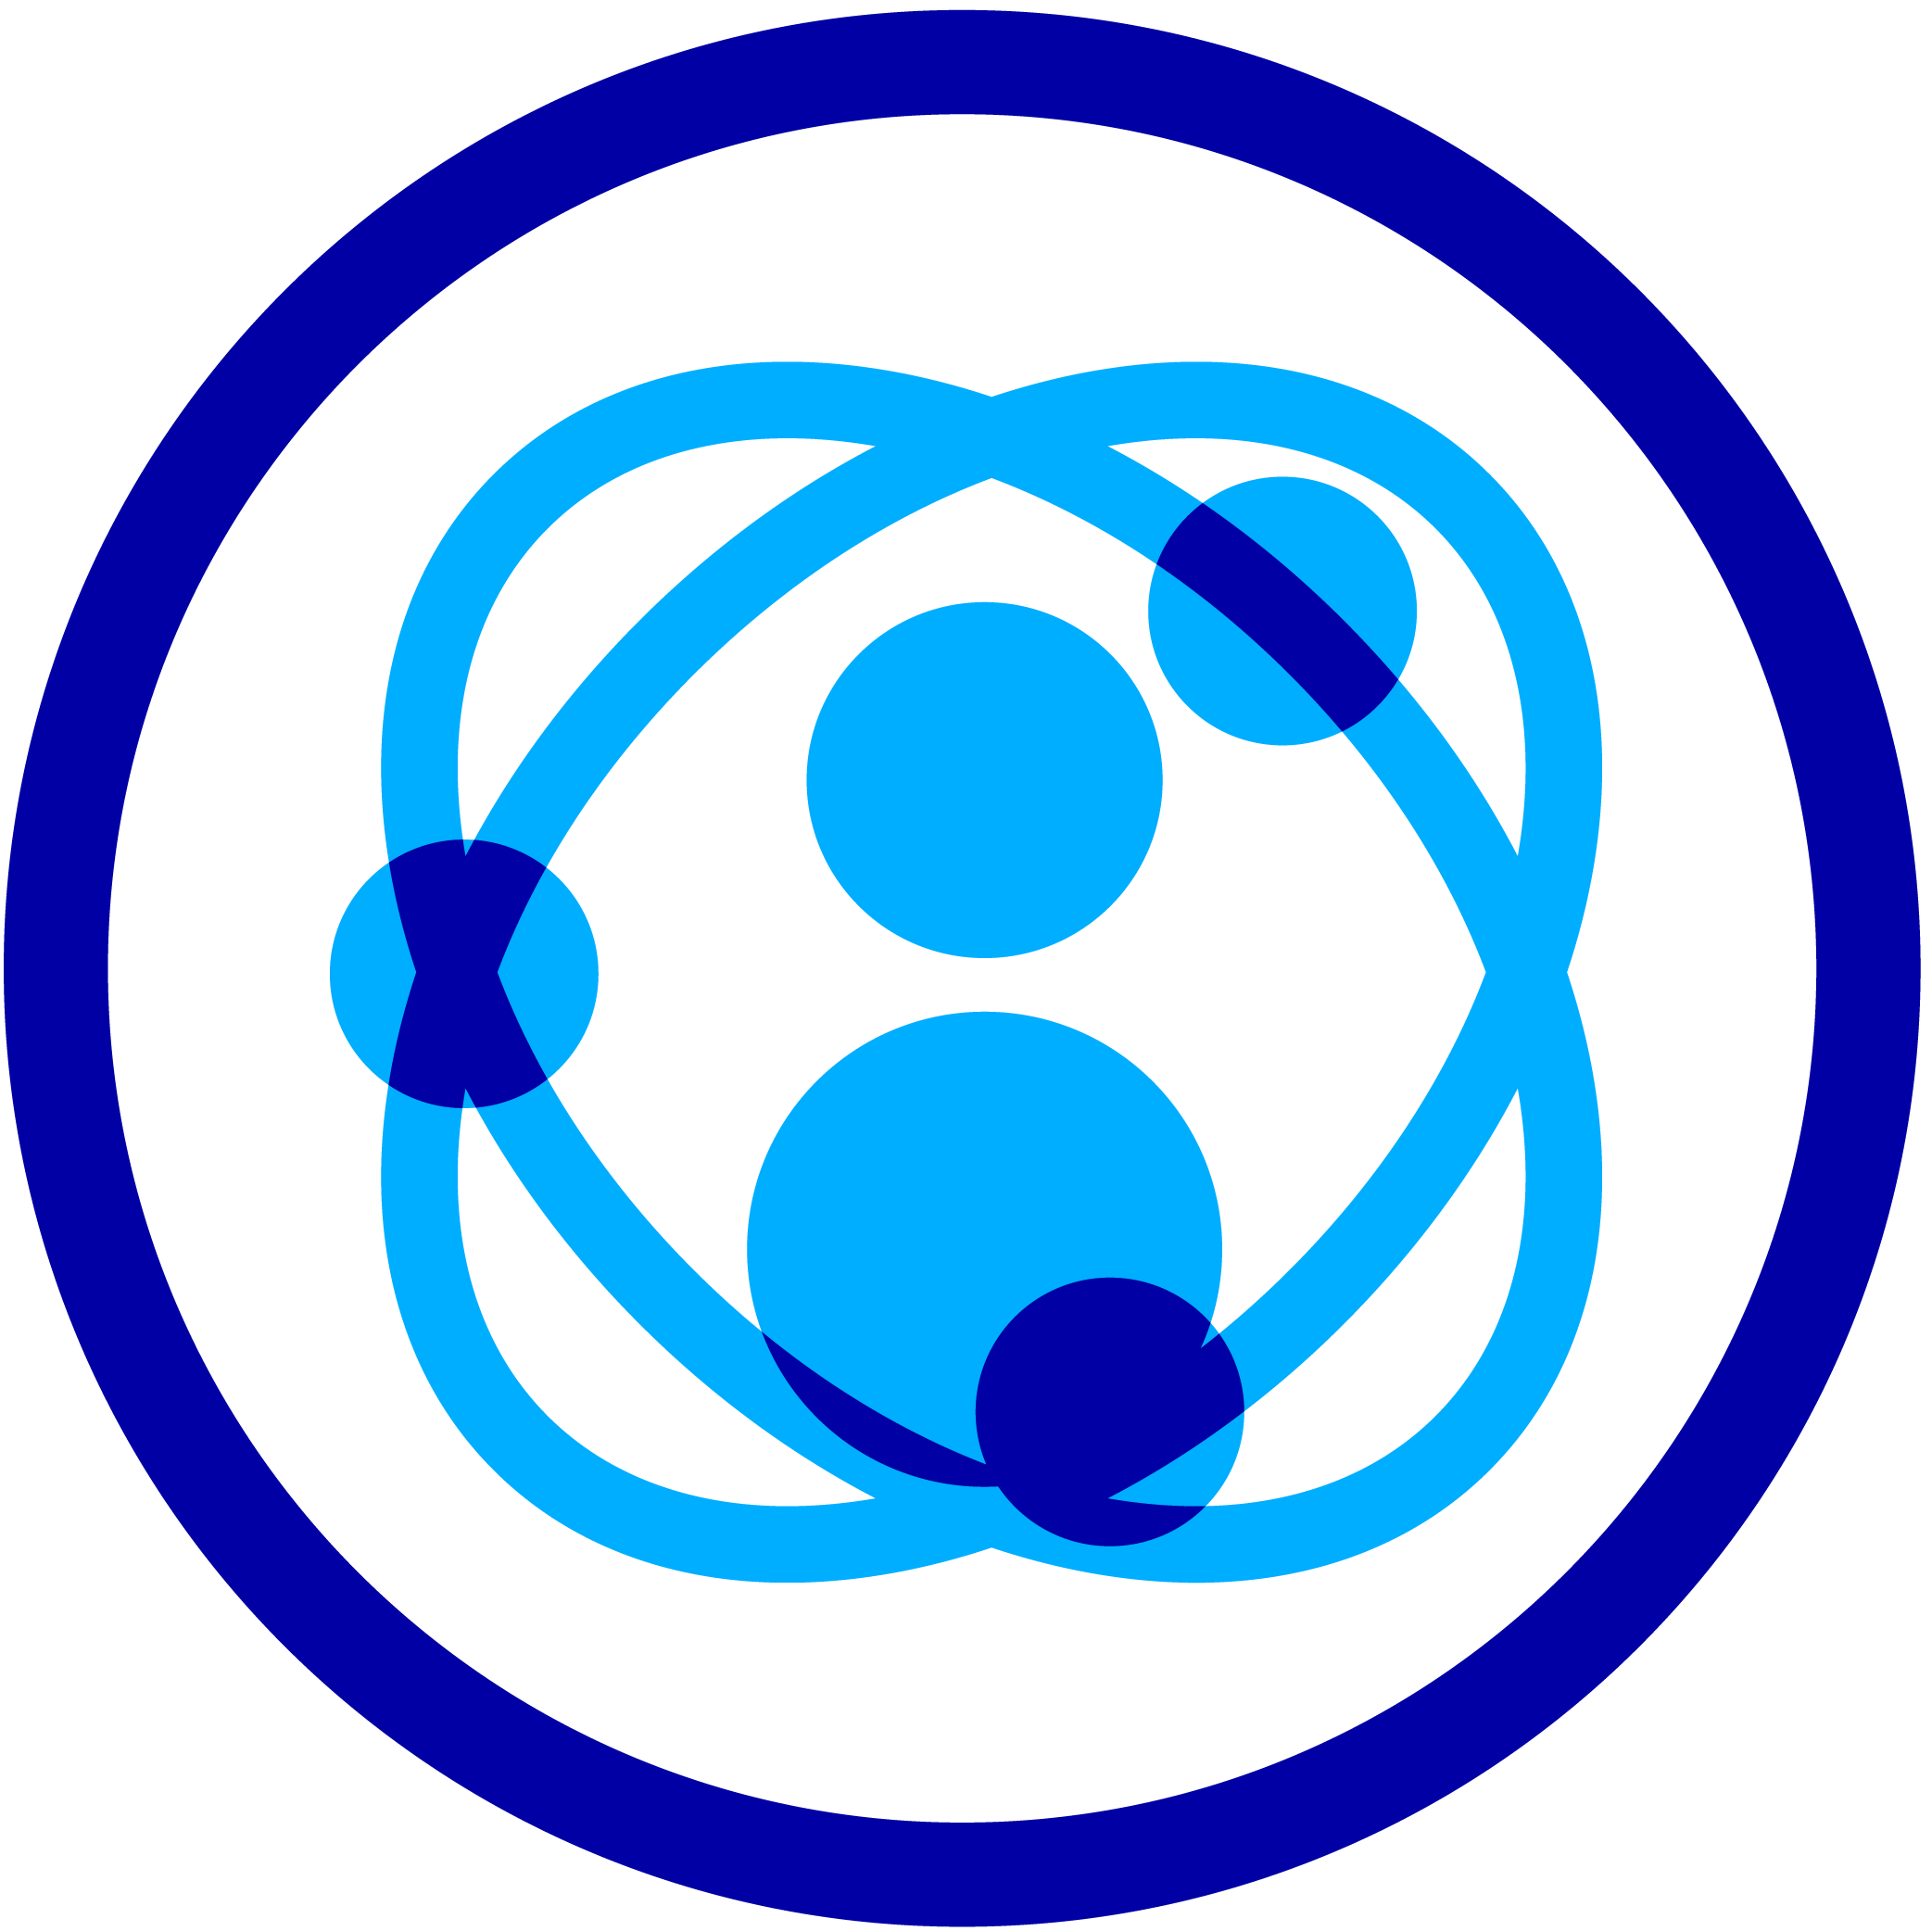 https://cl.fi-group.com/wp-content/uploads/sites/13/2021/02/blue-icons-set_1-55.png